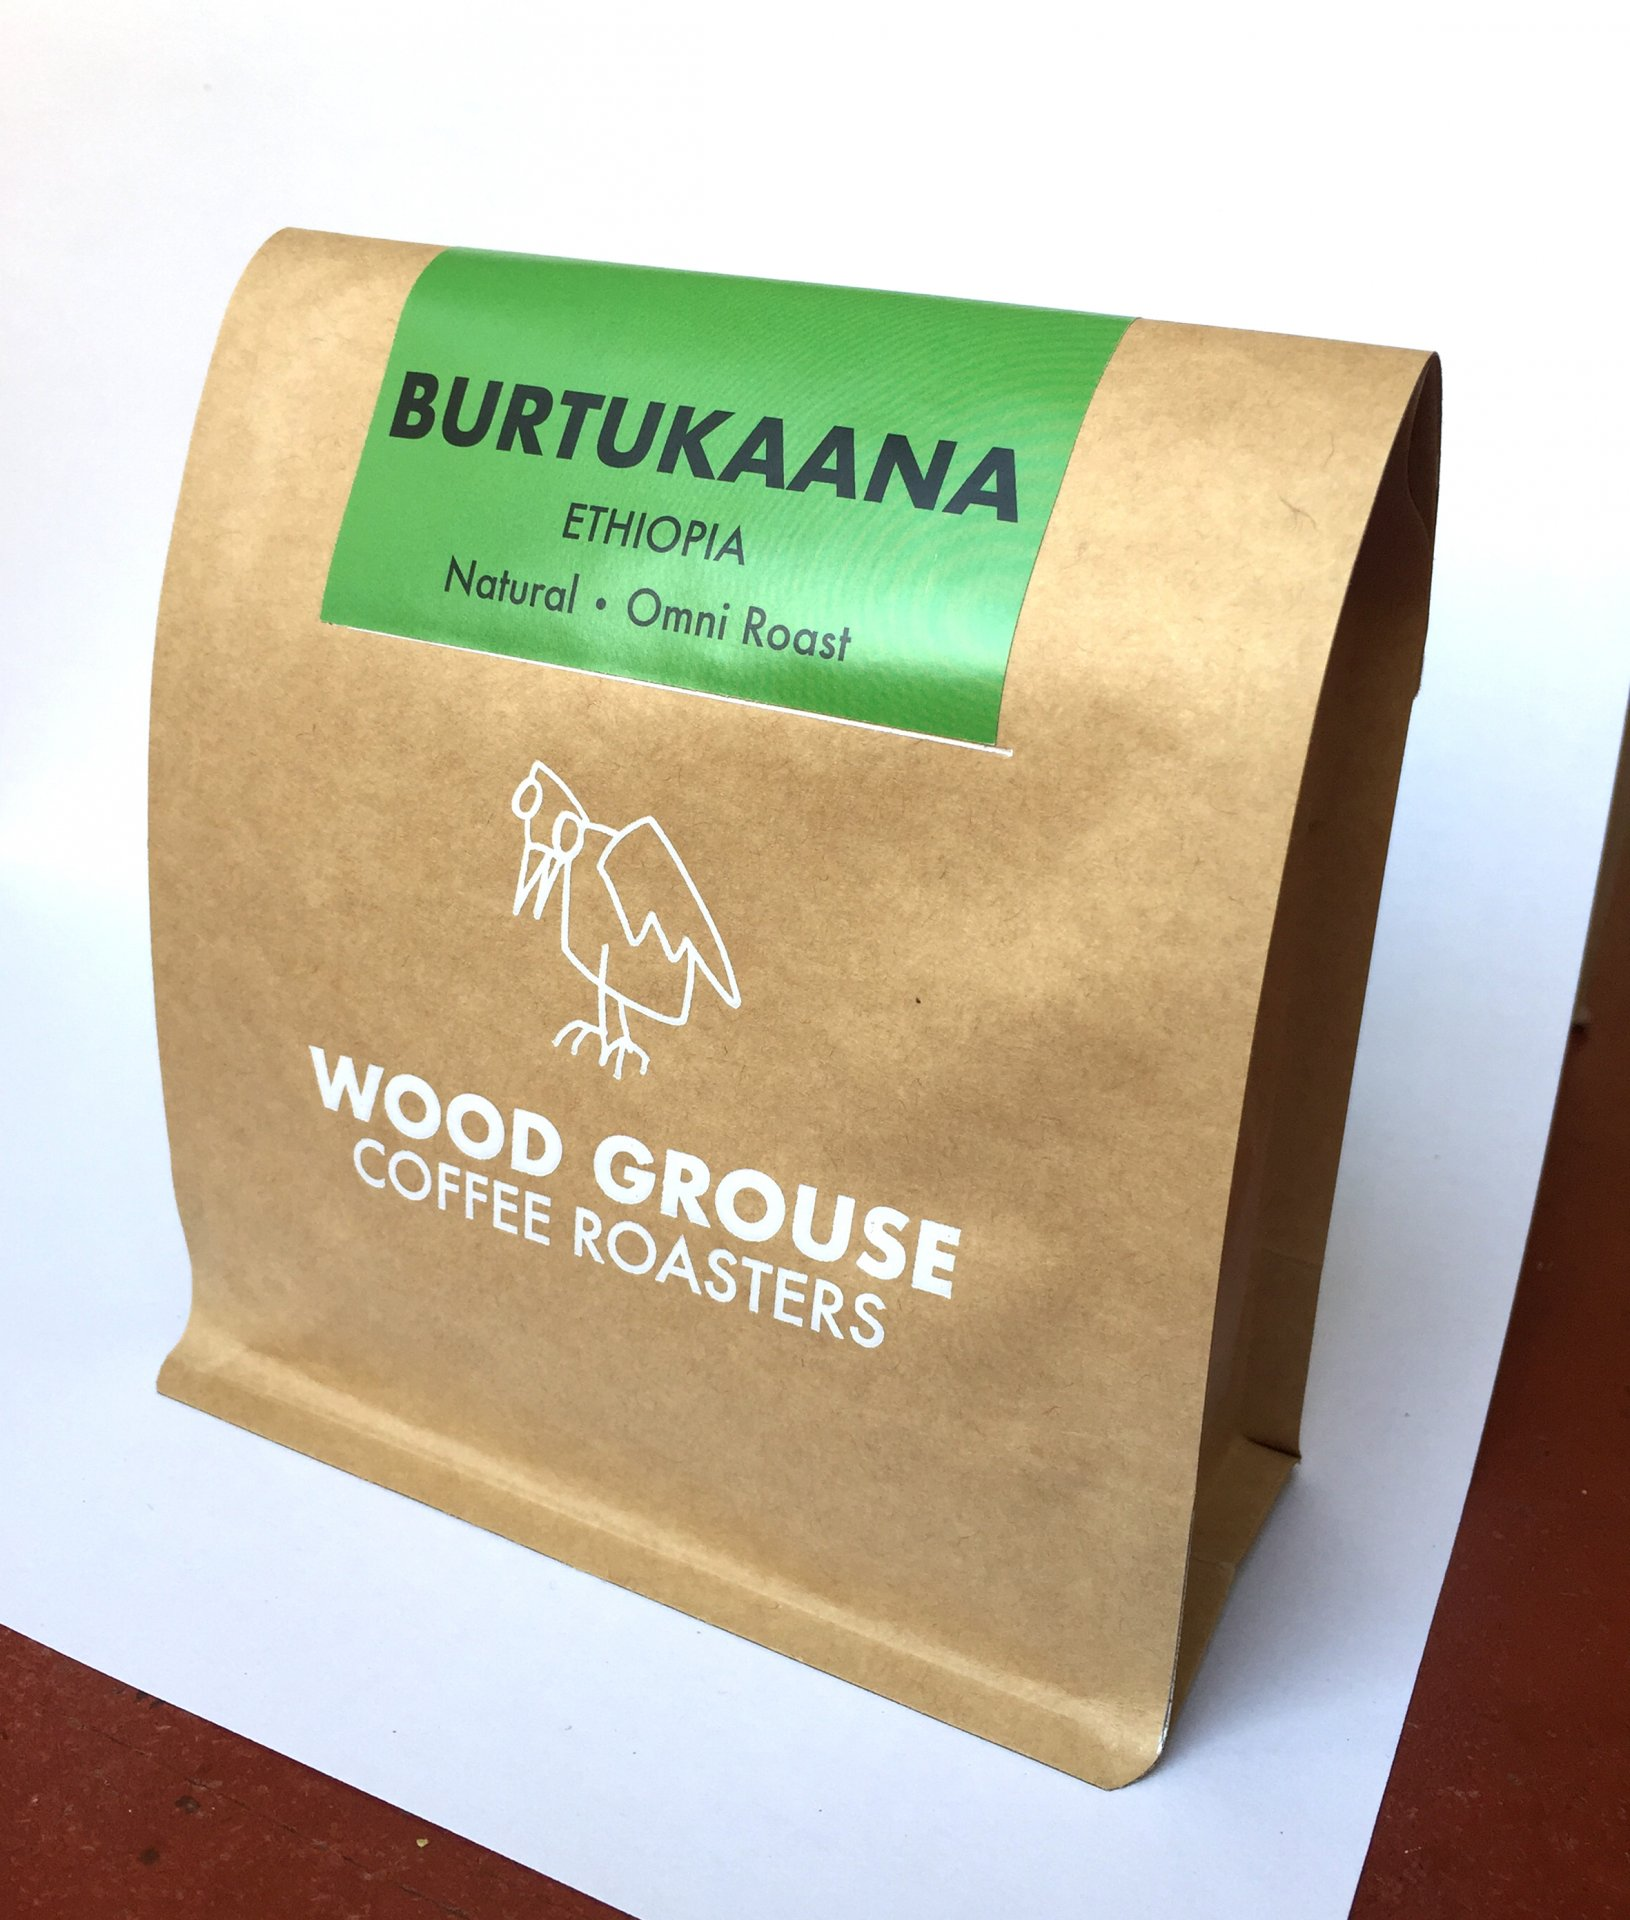 wood_grouse_coffee_roasters_burtukaana_omni_roast2.jpg